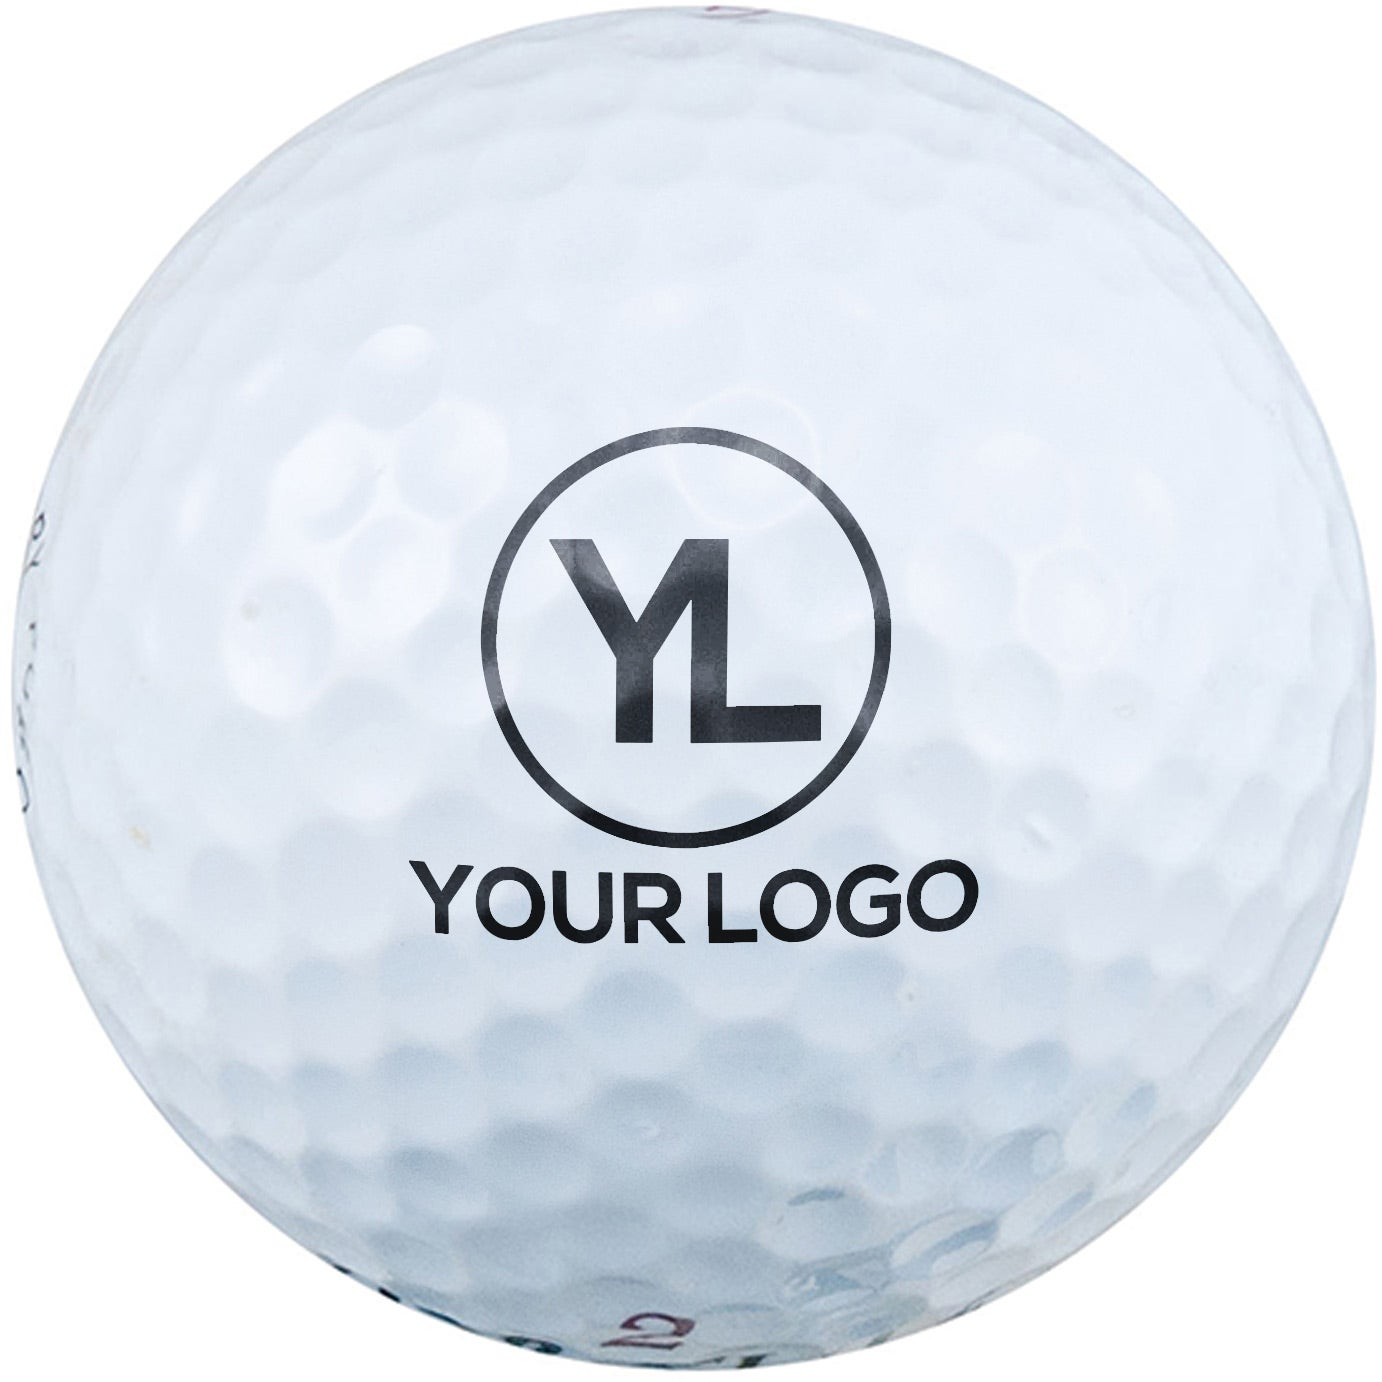 Promotional Value Golf Balls with Custom Logo for $1.19 Ea.